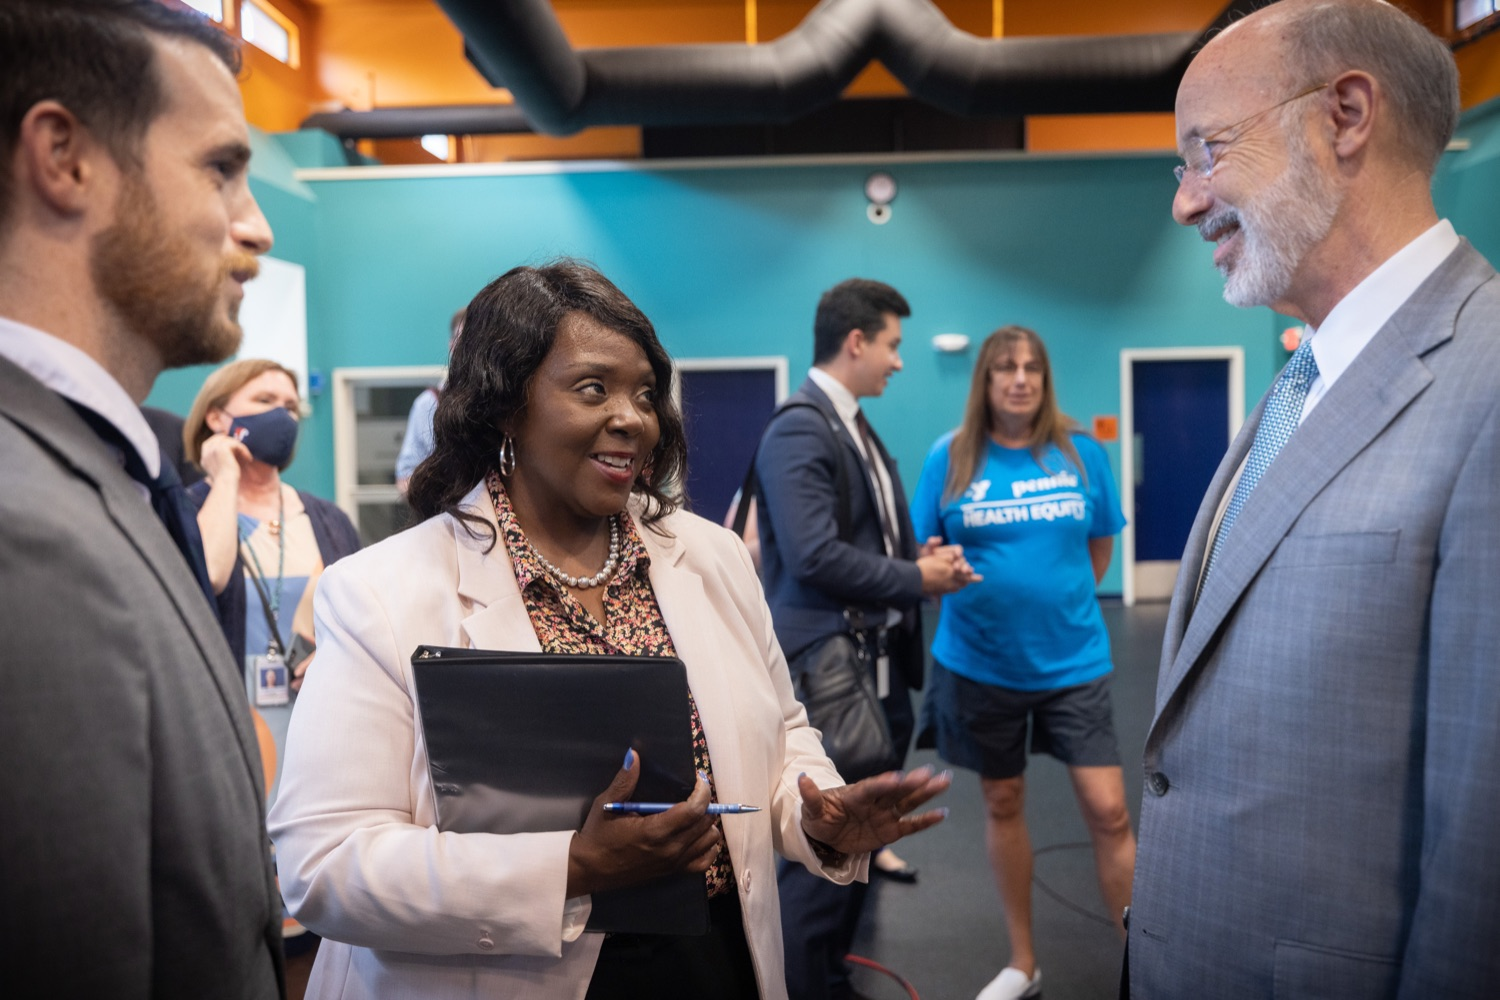 """<a href=""""https://filesource.wostreaming.net/commonwealthofpa/photo/18815_gov_voterRights_dz_020.jpg"""" target=""""_blank"""">⇣Download Photo<br></a>Acting Secretary of the Commonwealth Veronica Degraffenreid greeting Pennsylvania Governor Tom Wolf.With some politicians spreading lies about our elections to divide us, Governor Tom Wolf today vowed to protect the freedom to vote and oppose legislation that would create barriers to voting and silence the voices of some Pennsylvanians. These are the same lies that led directly to the appalling assault on our U.S. Capitol and our democracy on January 6, and now, just a few short months later, the same people who fomented, encouraged, and joined that mob are again emerging to undermine the fabric of our nation.   Harrisburg, PA  June 9, 2021"""